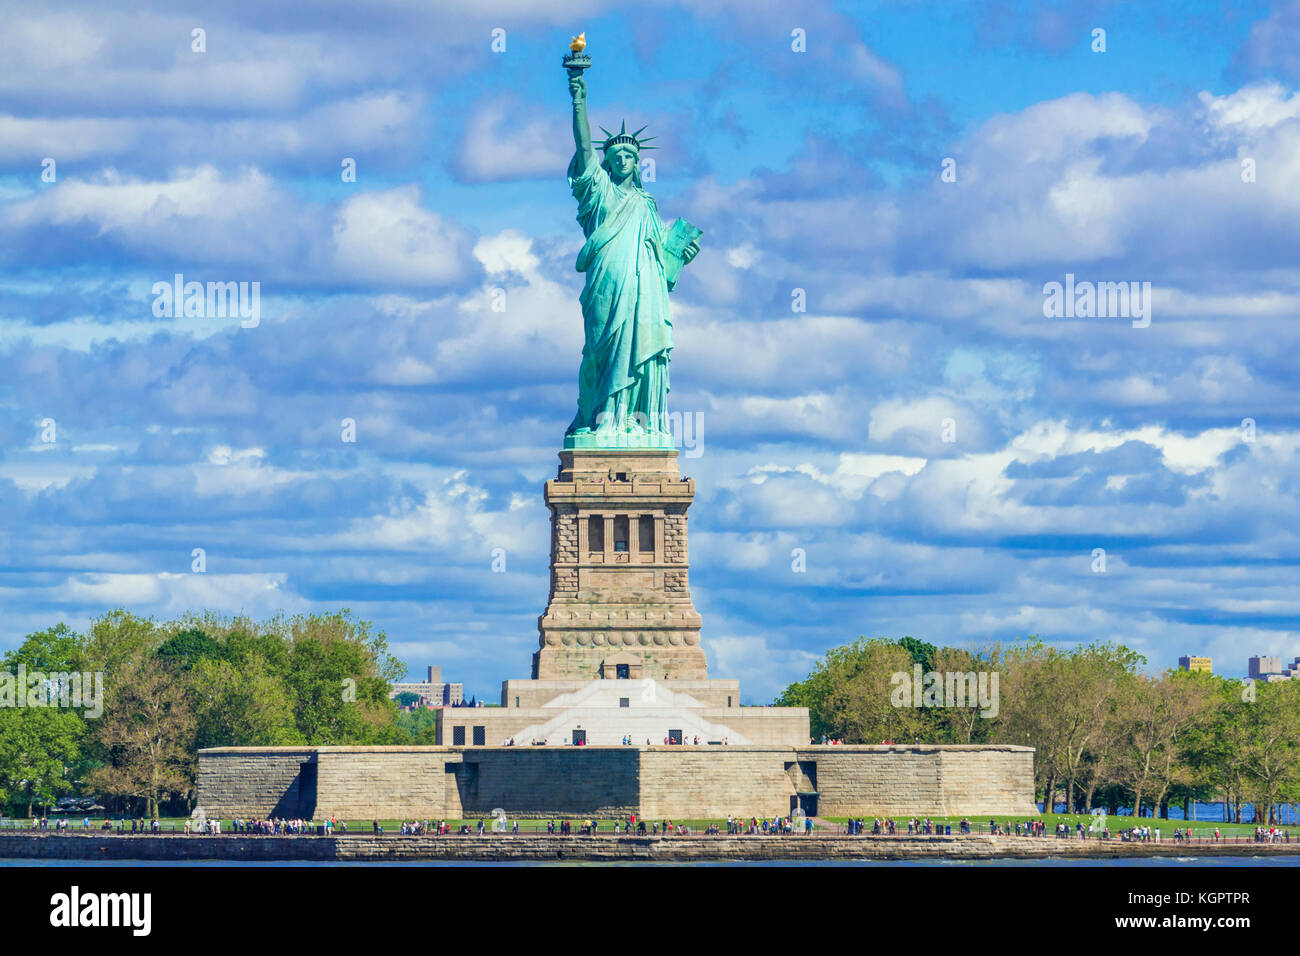 Statue of Liberty New York Statue of Liberty New York city Statue of Liberty island new york state usa us united - Stock Image